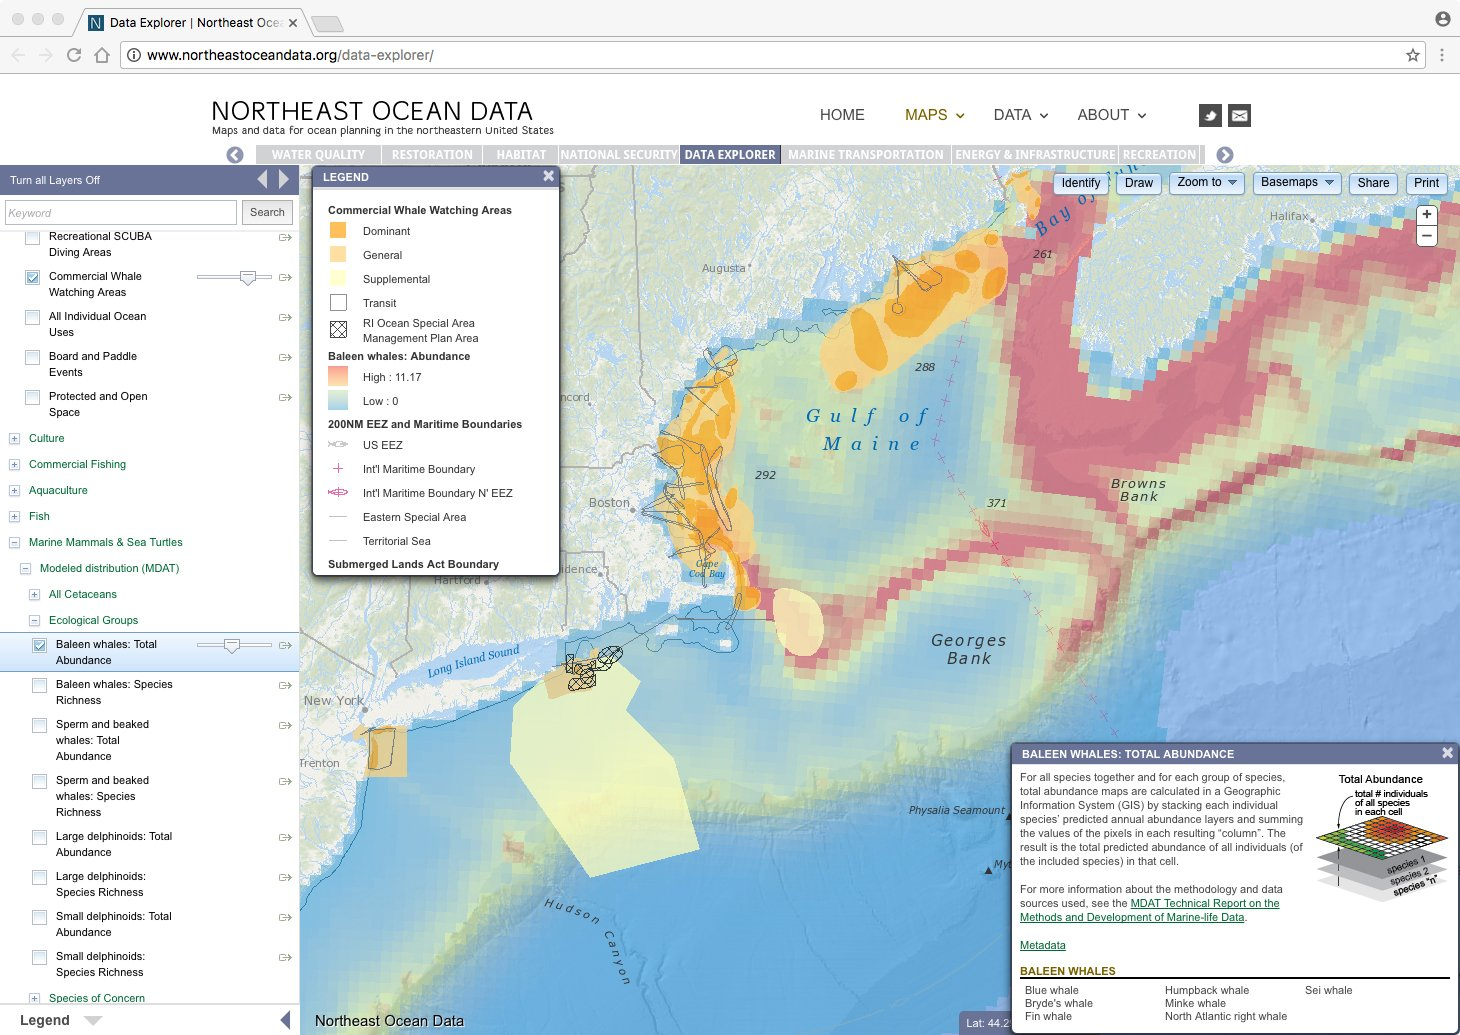 Screenshot: Map of baleen whale abundance with commercial whale watching areas